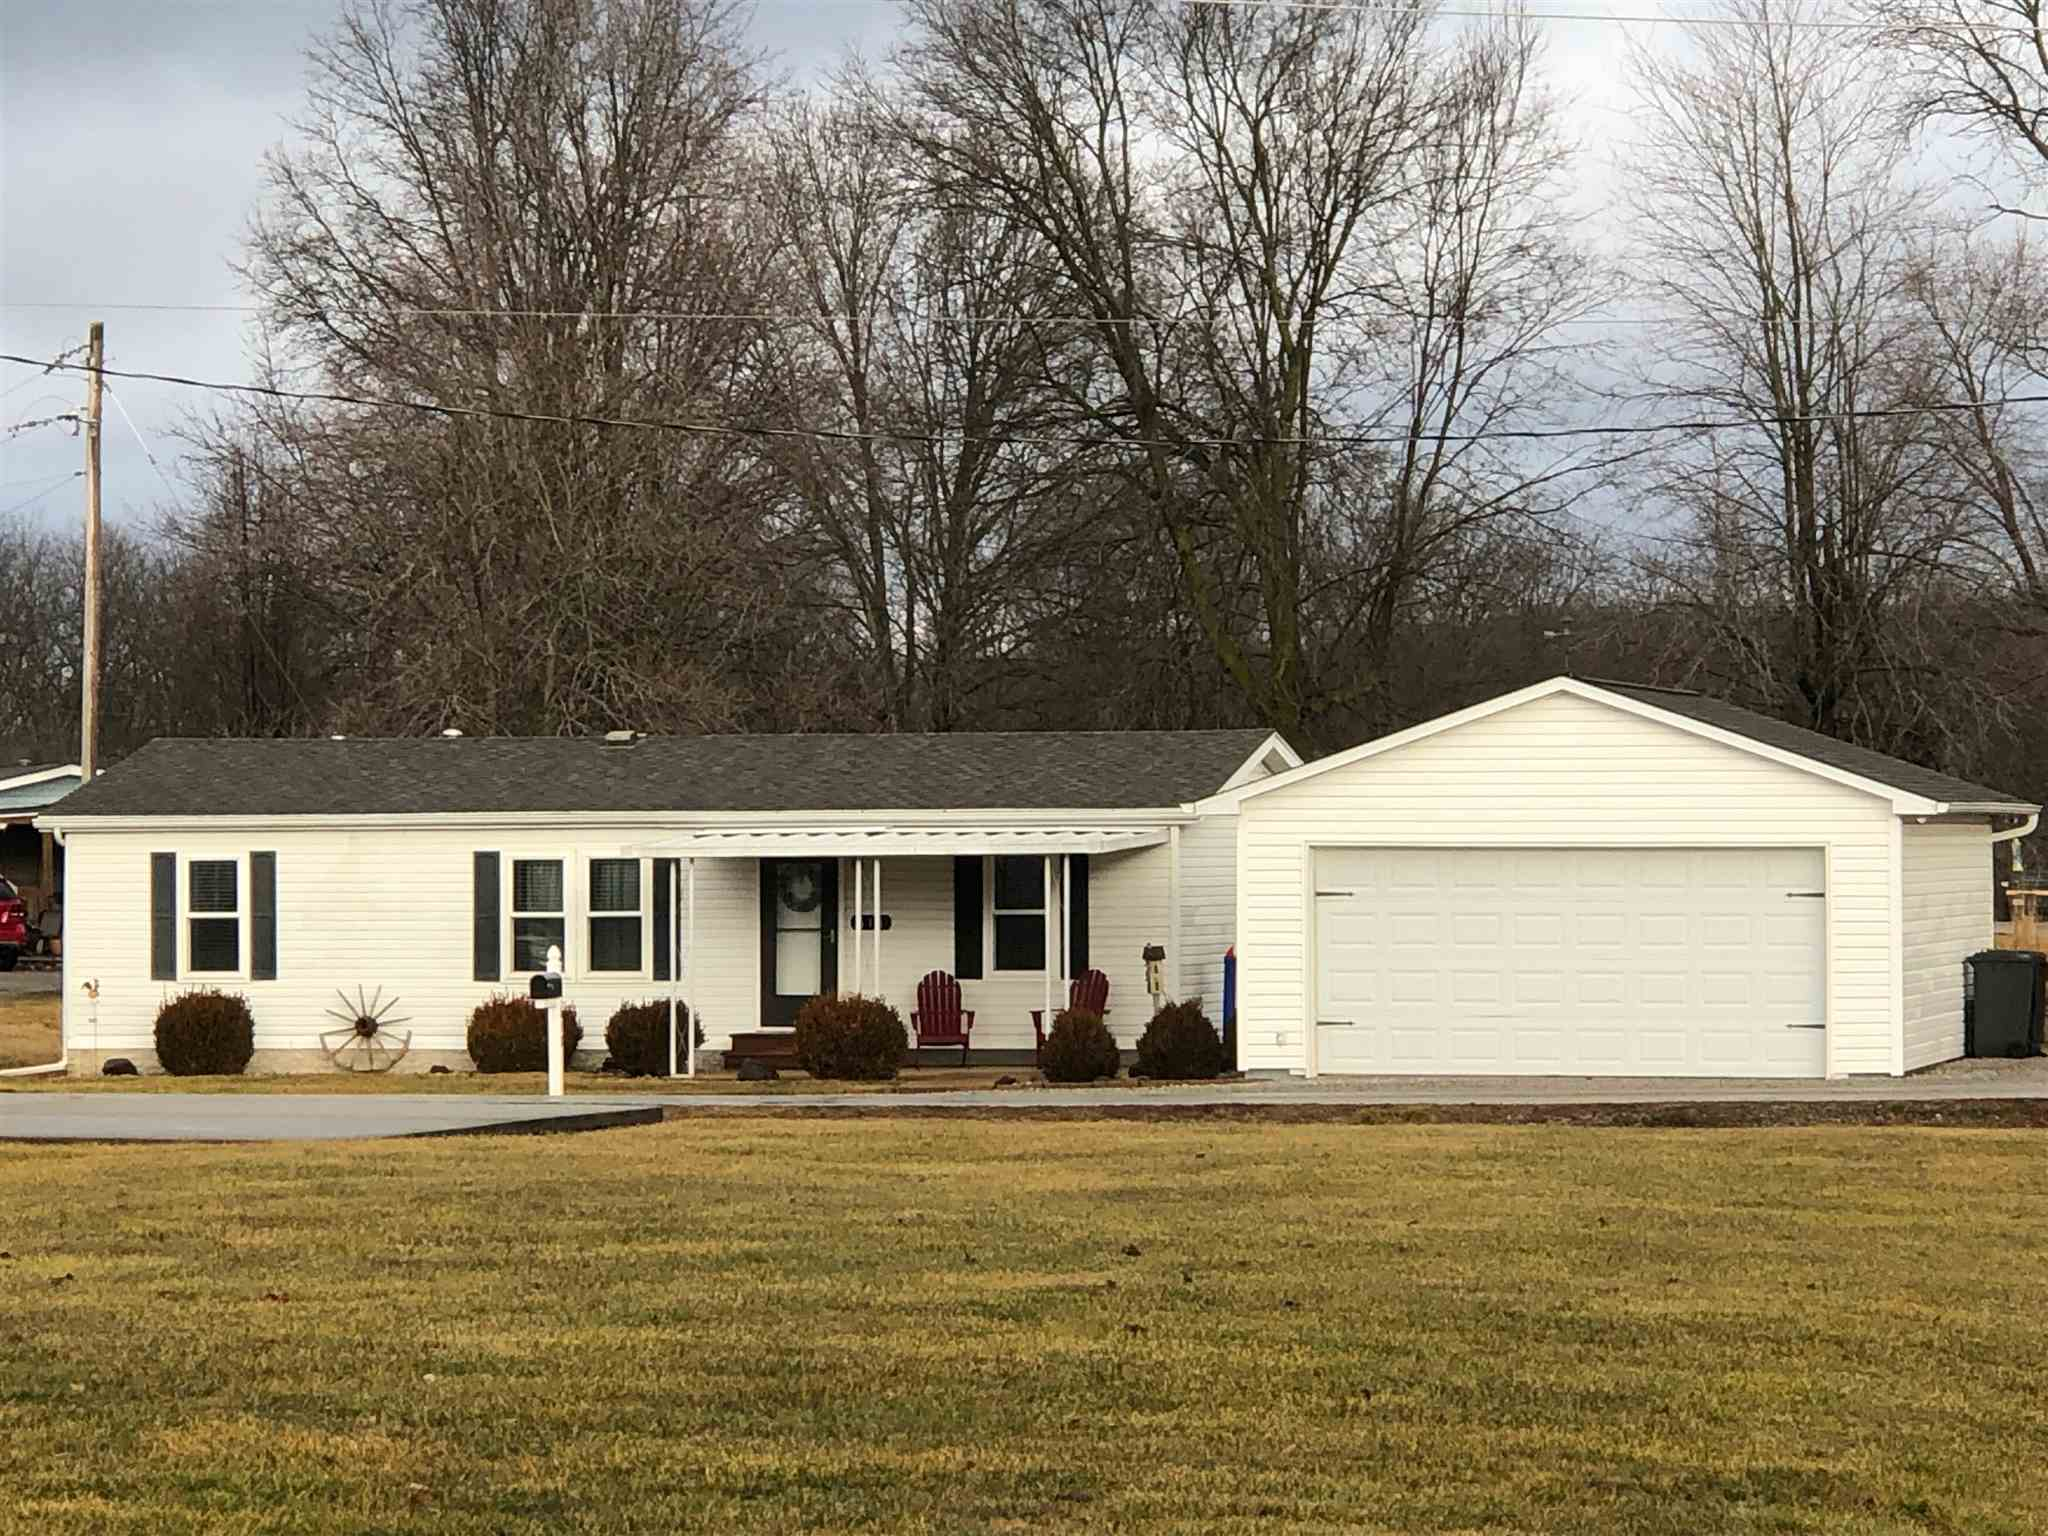 618 NORTH Property Photo - Woodlawn, IL real estate listing